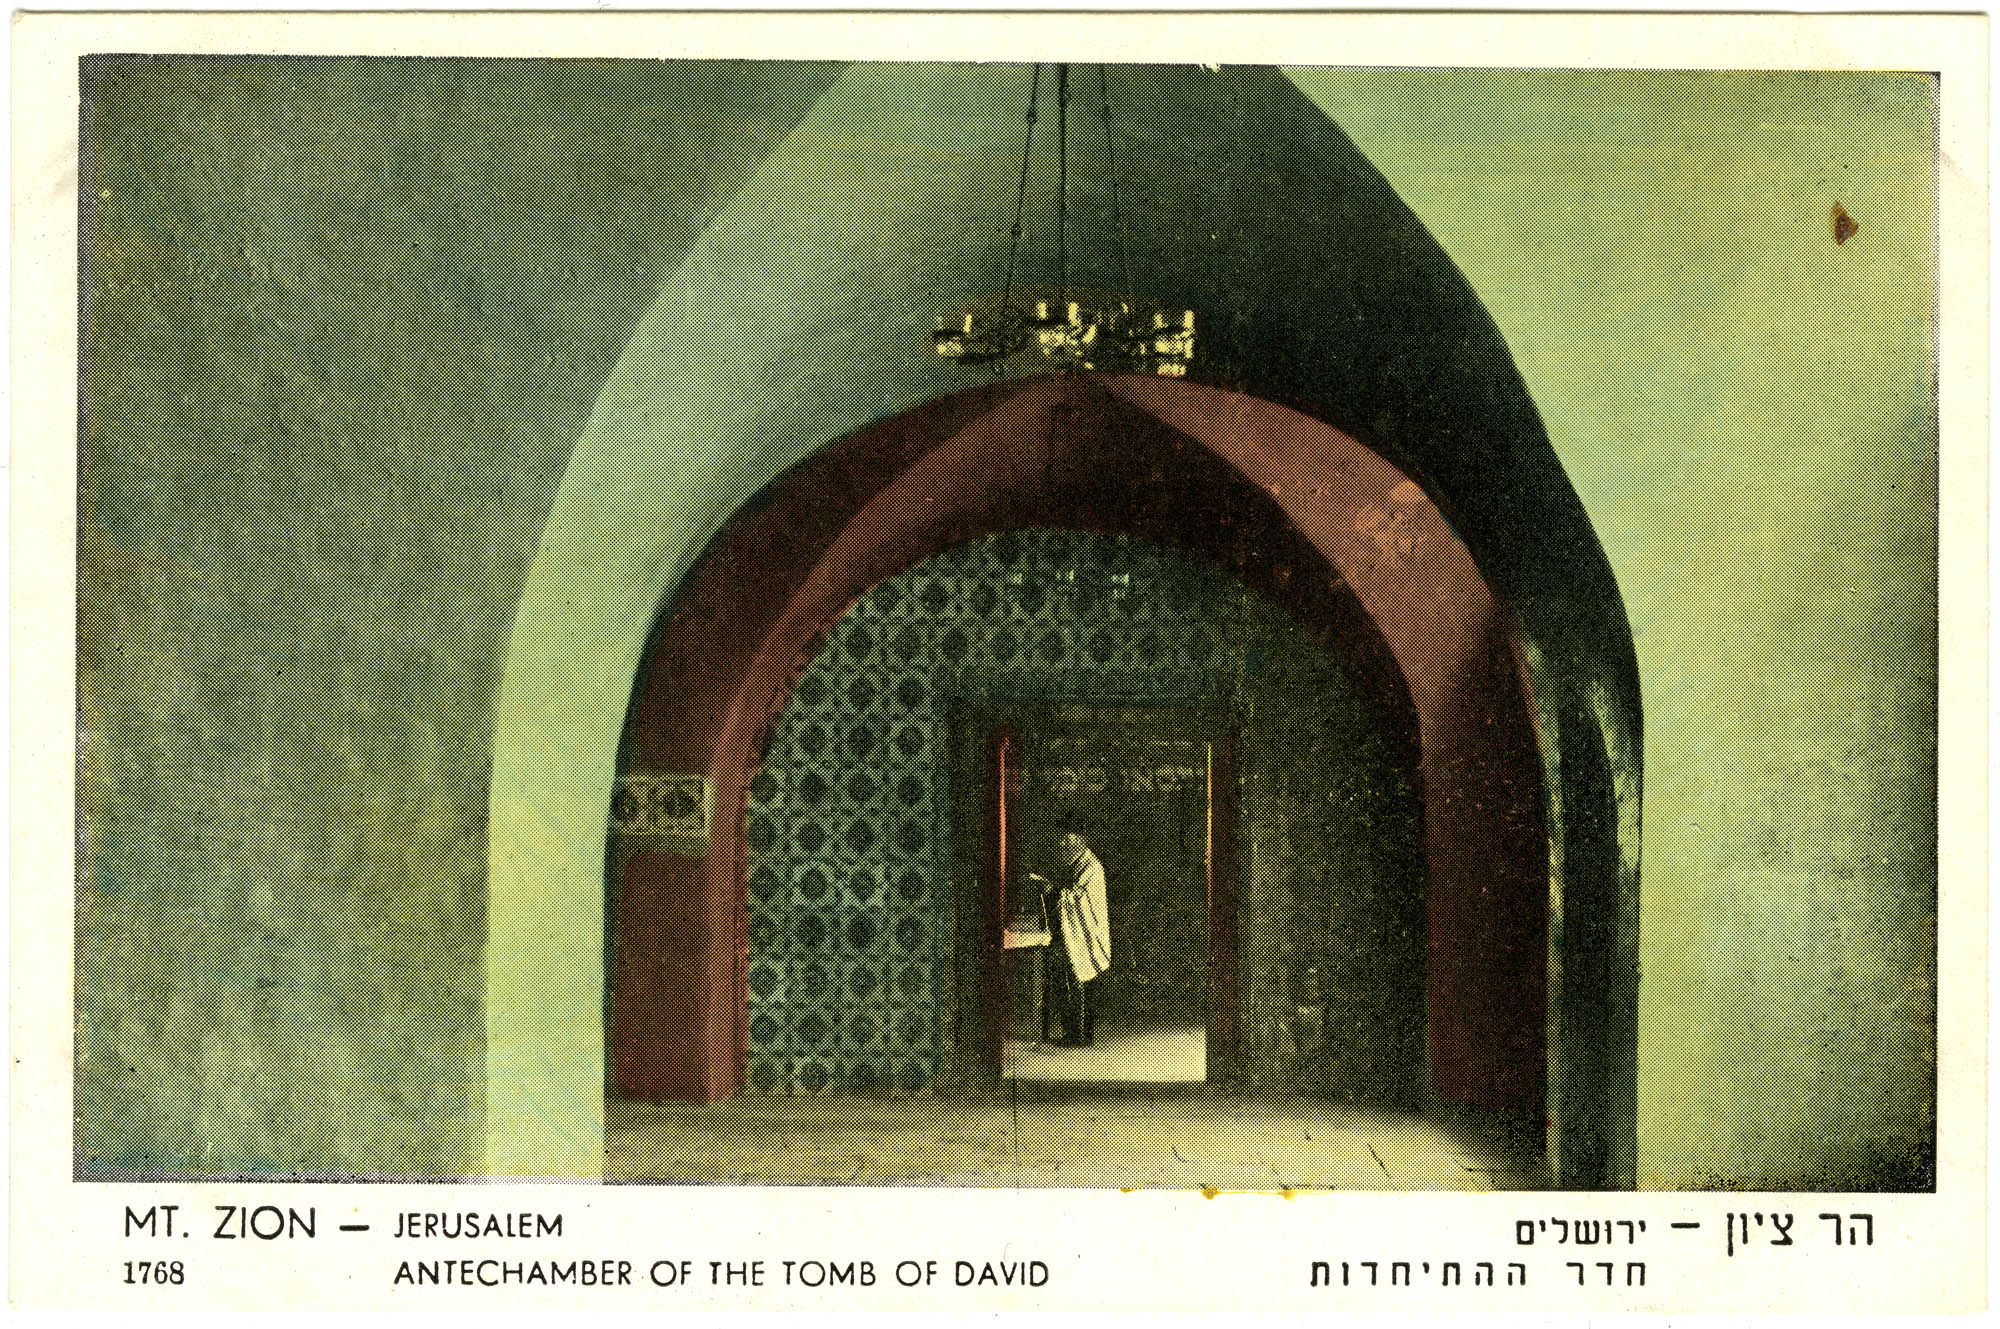 Mt. Zion - Jerusalem, antechamber of the Tomb of David / הר ציון - ירושלים, חדר ההתיחדות